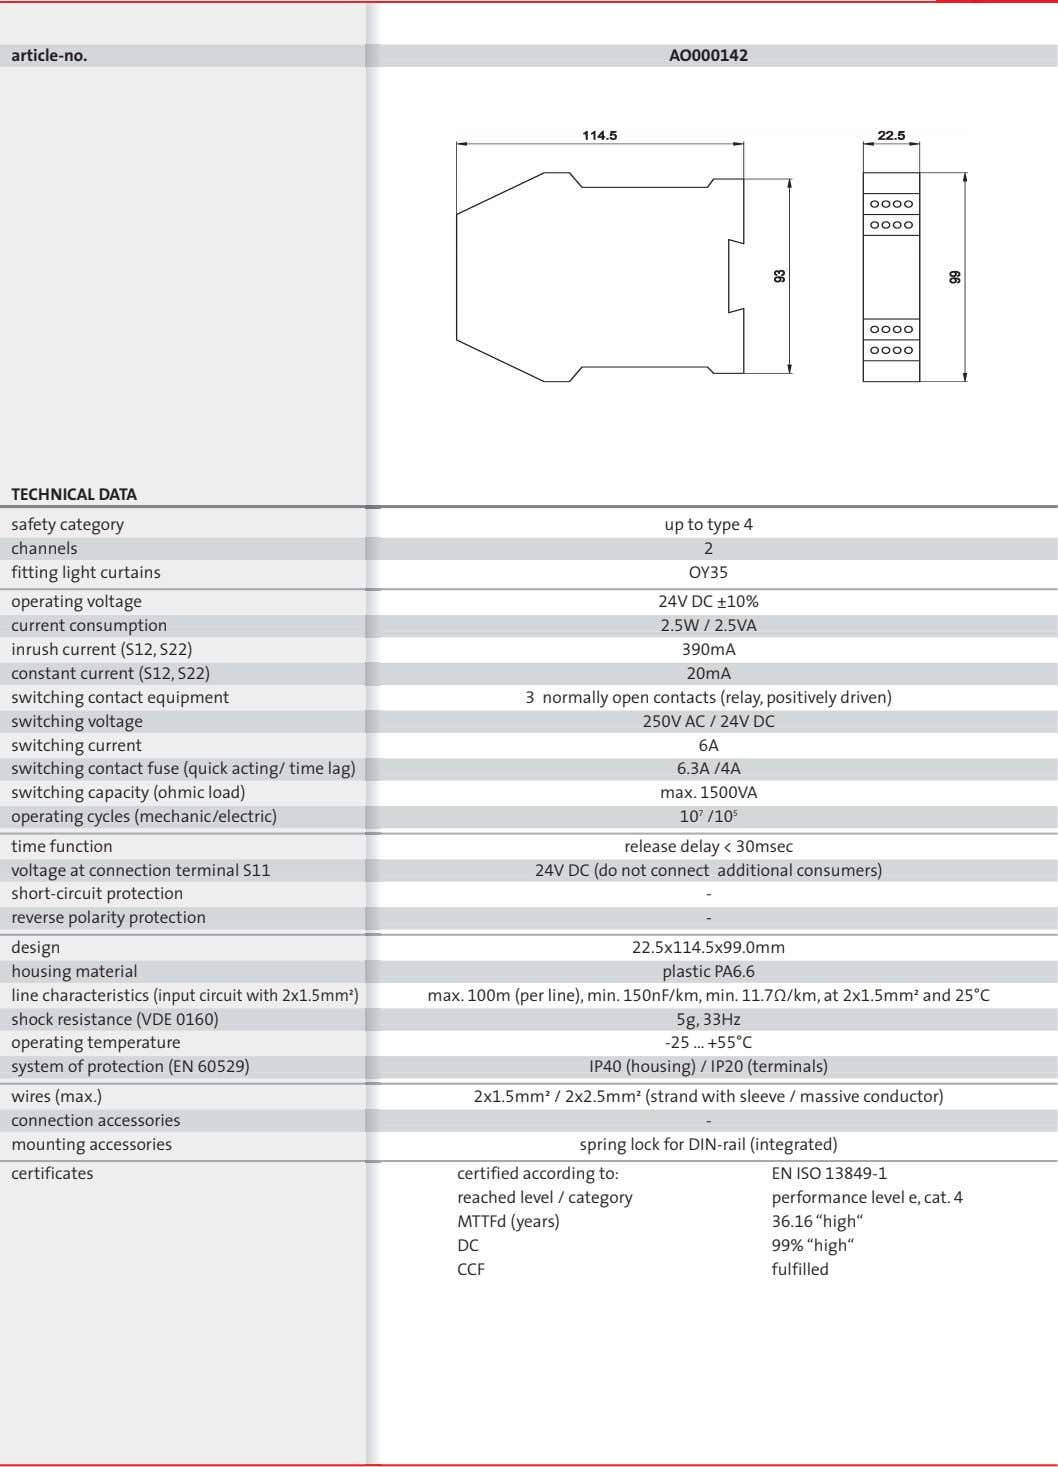 article-no. AO000142 TECHNICAL DATA safety category up to type 4 channels 2 fitting light curtains